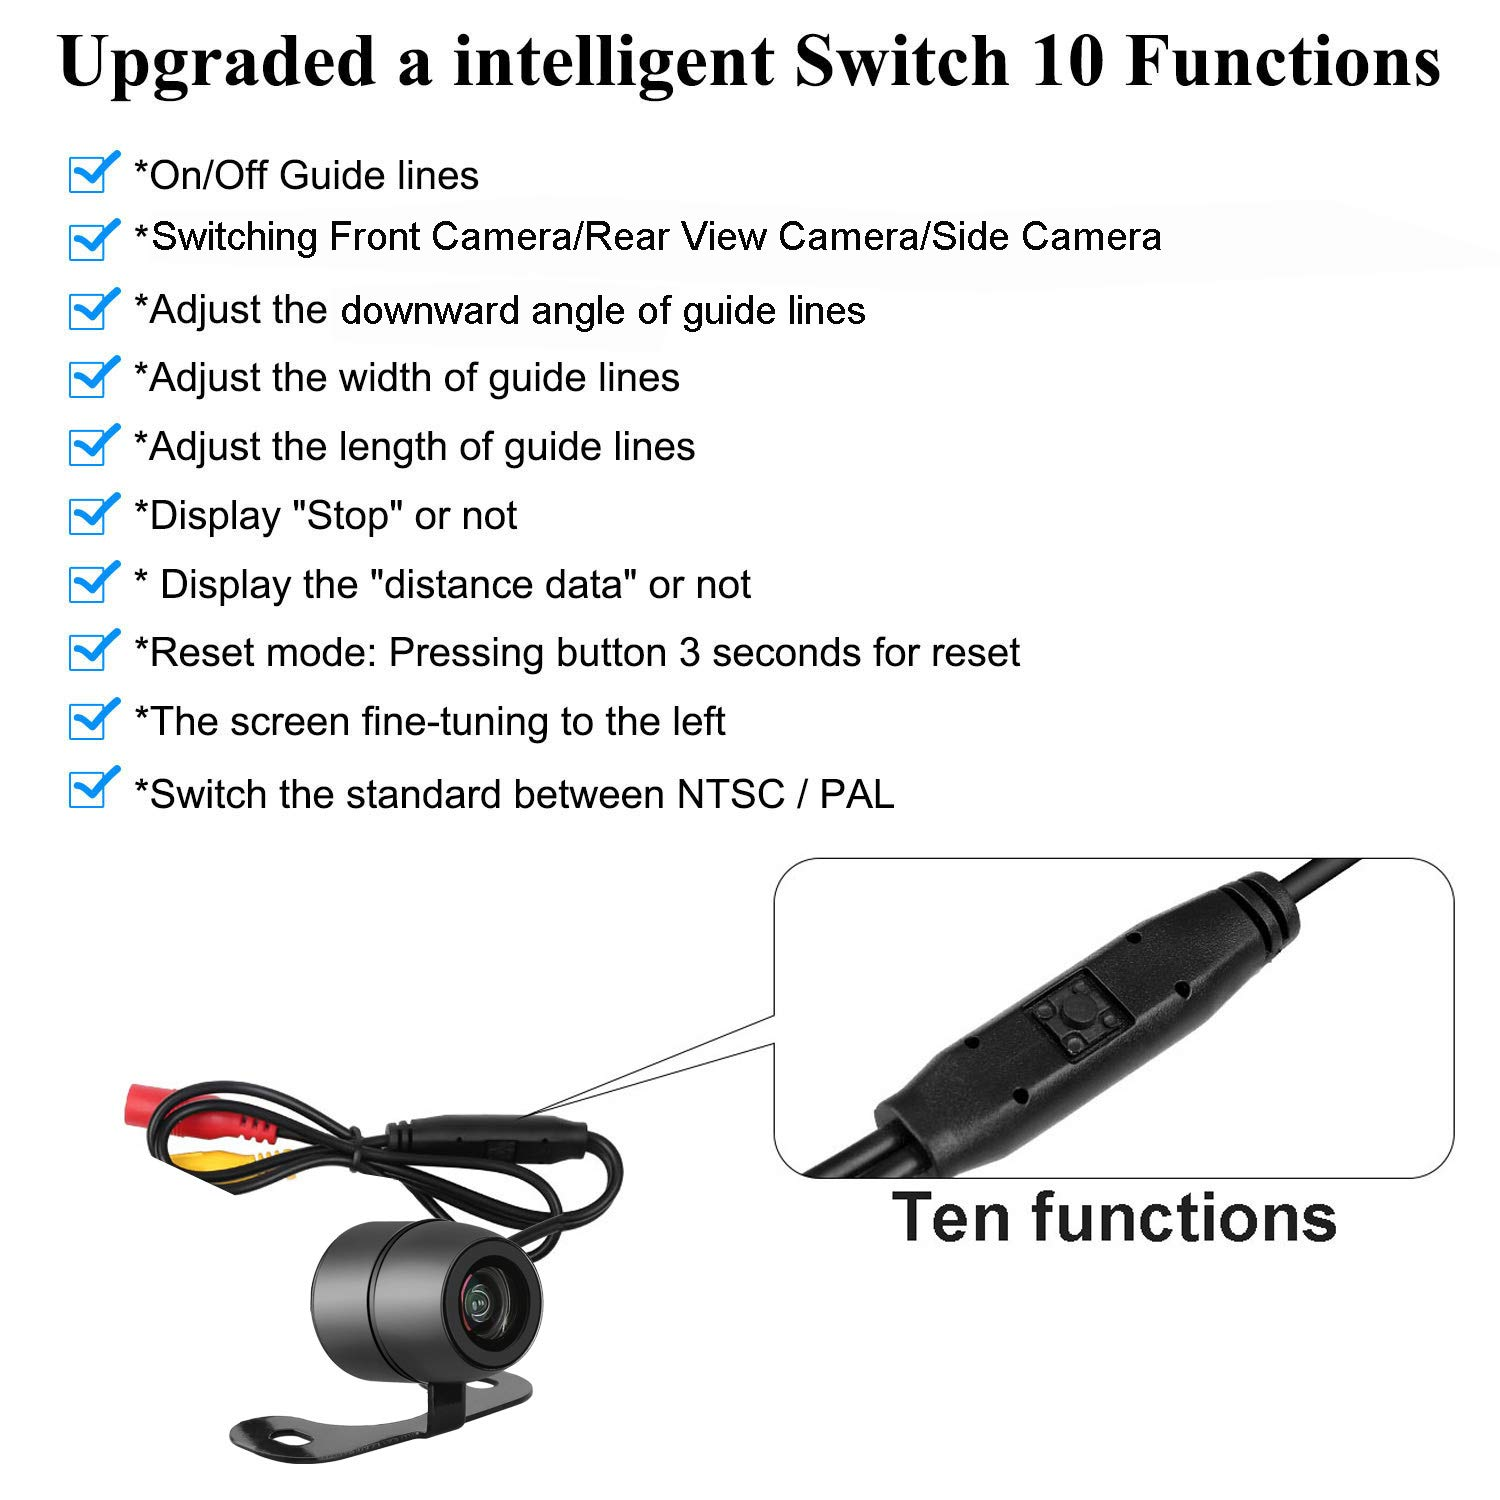 DohonesBest Backup Camera for Car//SUV//Pickup//Van//RV//Trailer 150/°Viewing Angle Rear View Camera//Front Camera//Side Camera Switchable ON//Off Guide Lines IP69 Waterproof Night Vision 4350450562